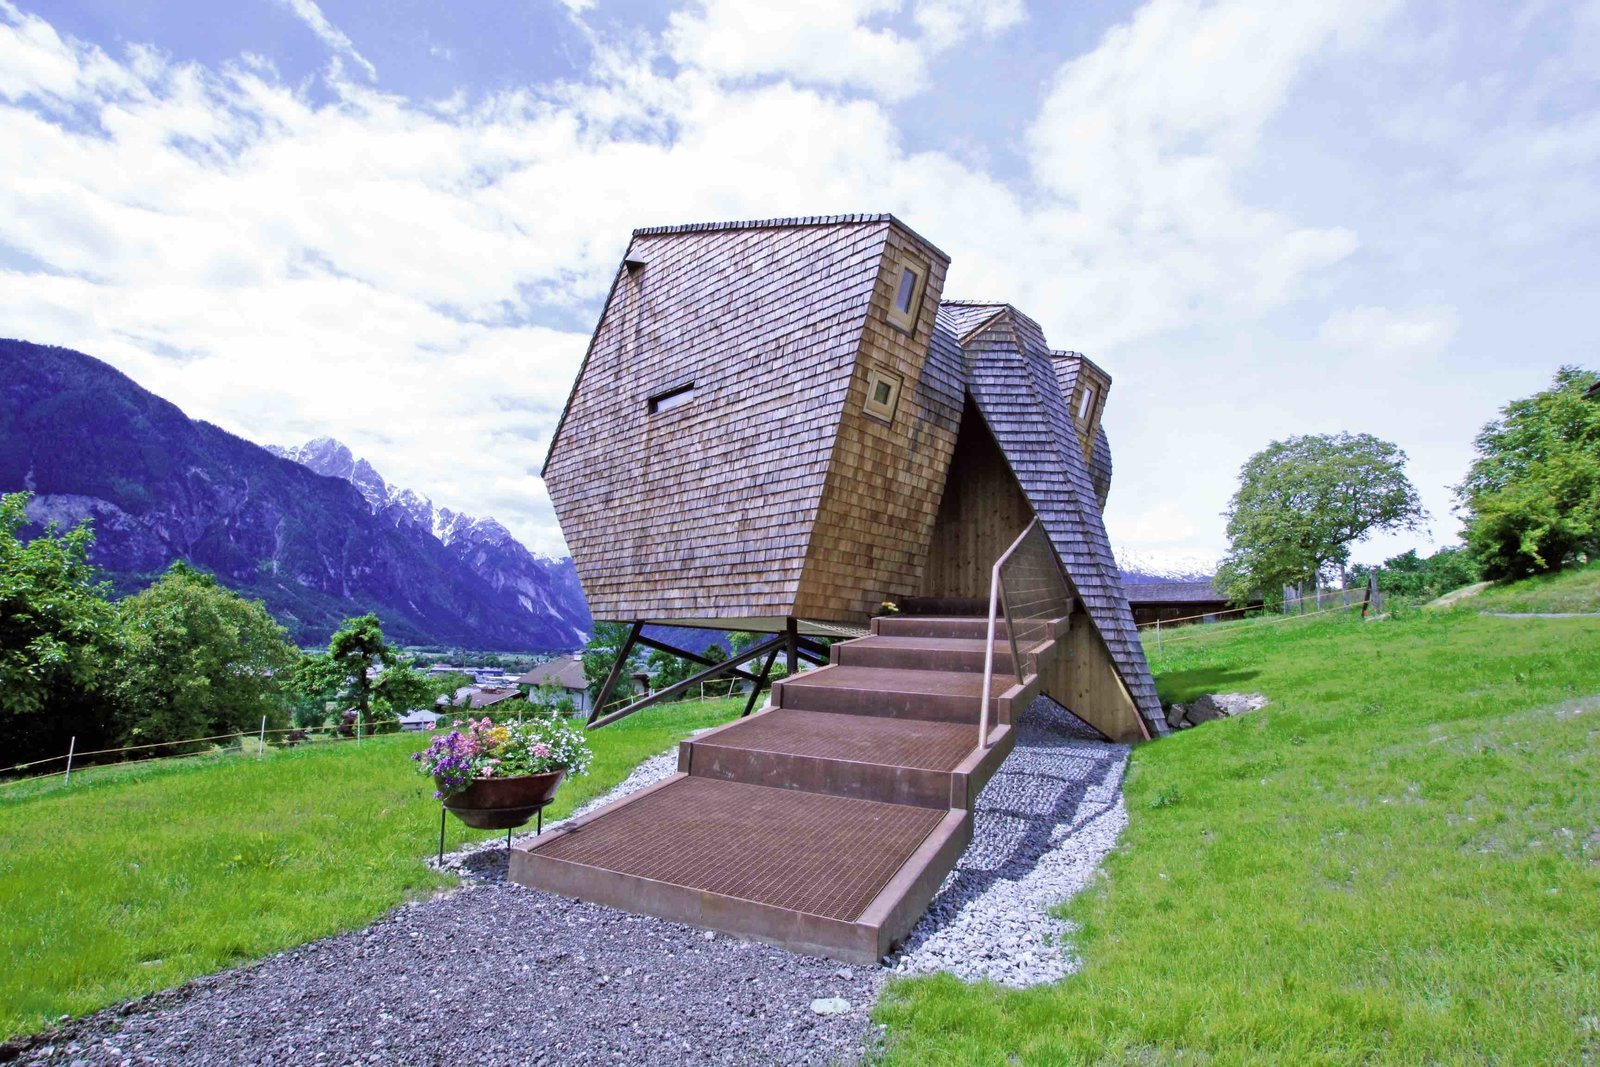 Exterior, Shingles Roof Material, Wood Siding Material, and Cabin Building Type  Photo 12 of 12 in Stay in a Tiny Shingled Cabin in Austria That Resembles a Bird-Like UFO